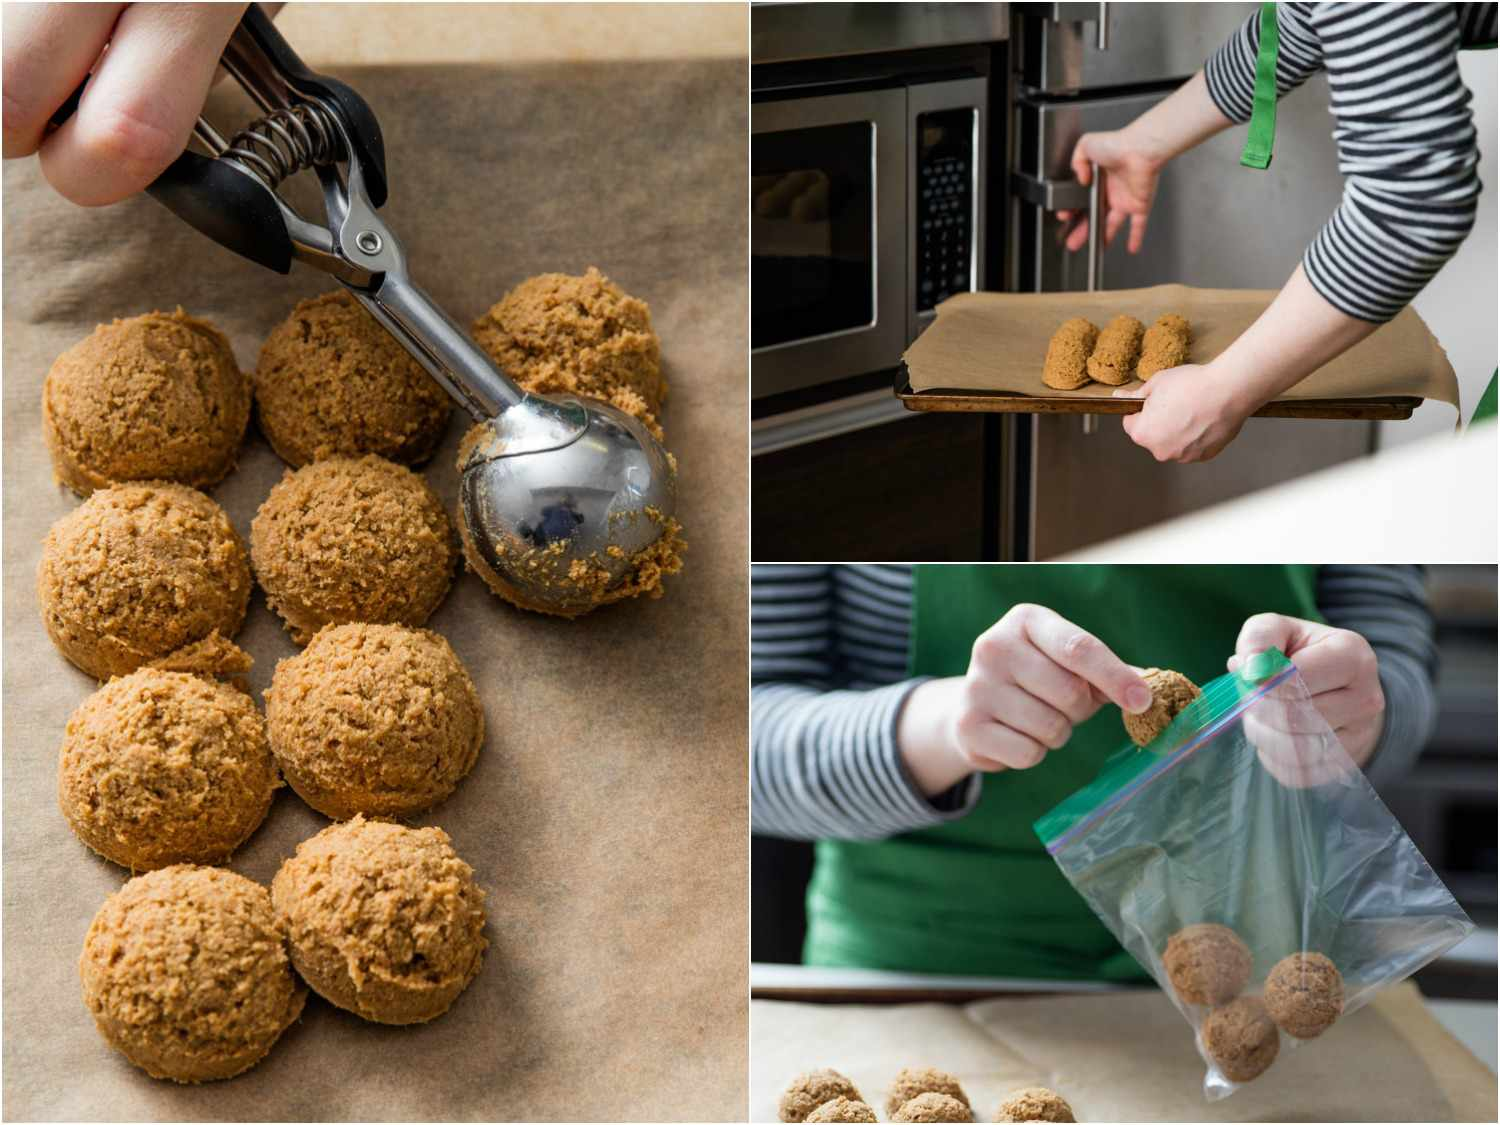 20161205-prepping-cookies-advance-holidays-vicky-wasik-collage.jpg